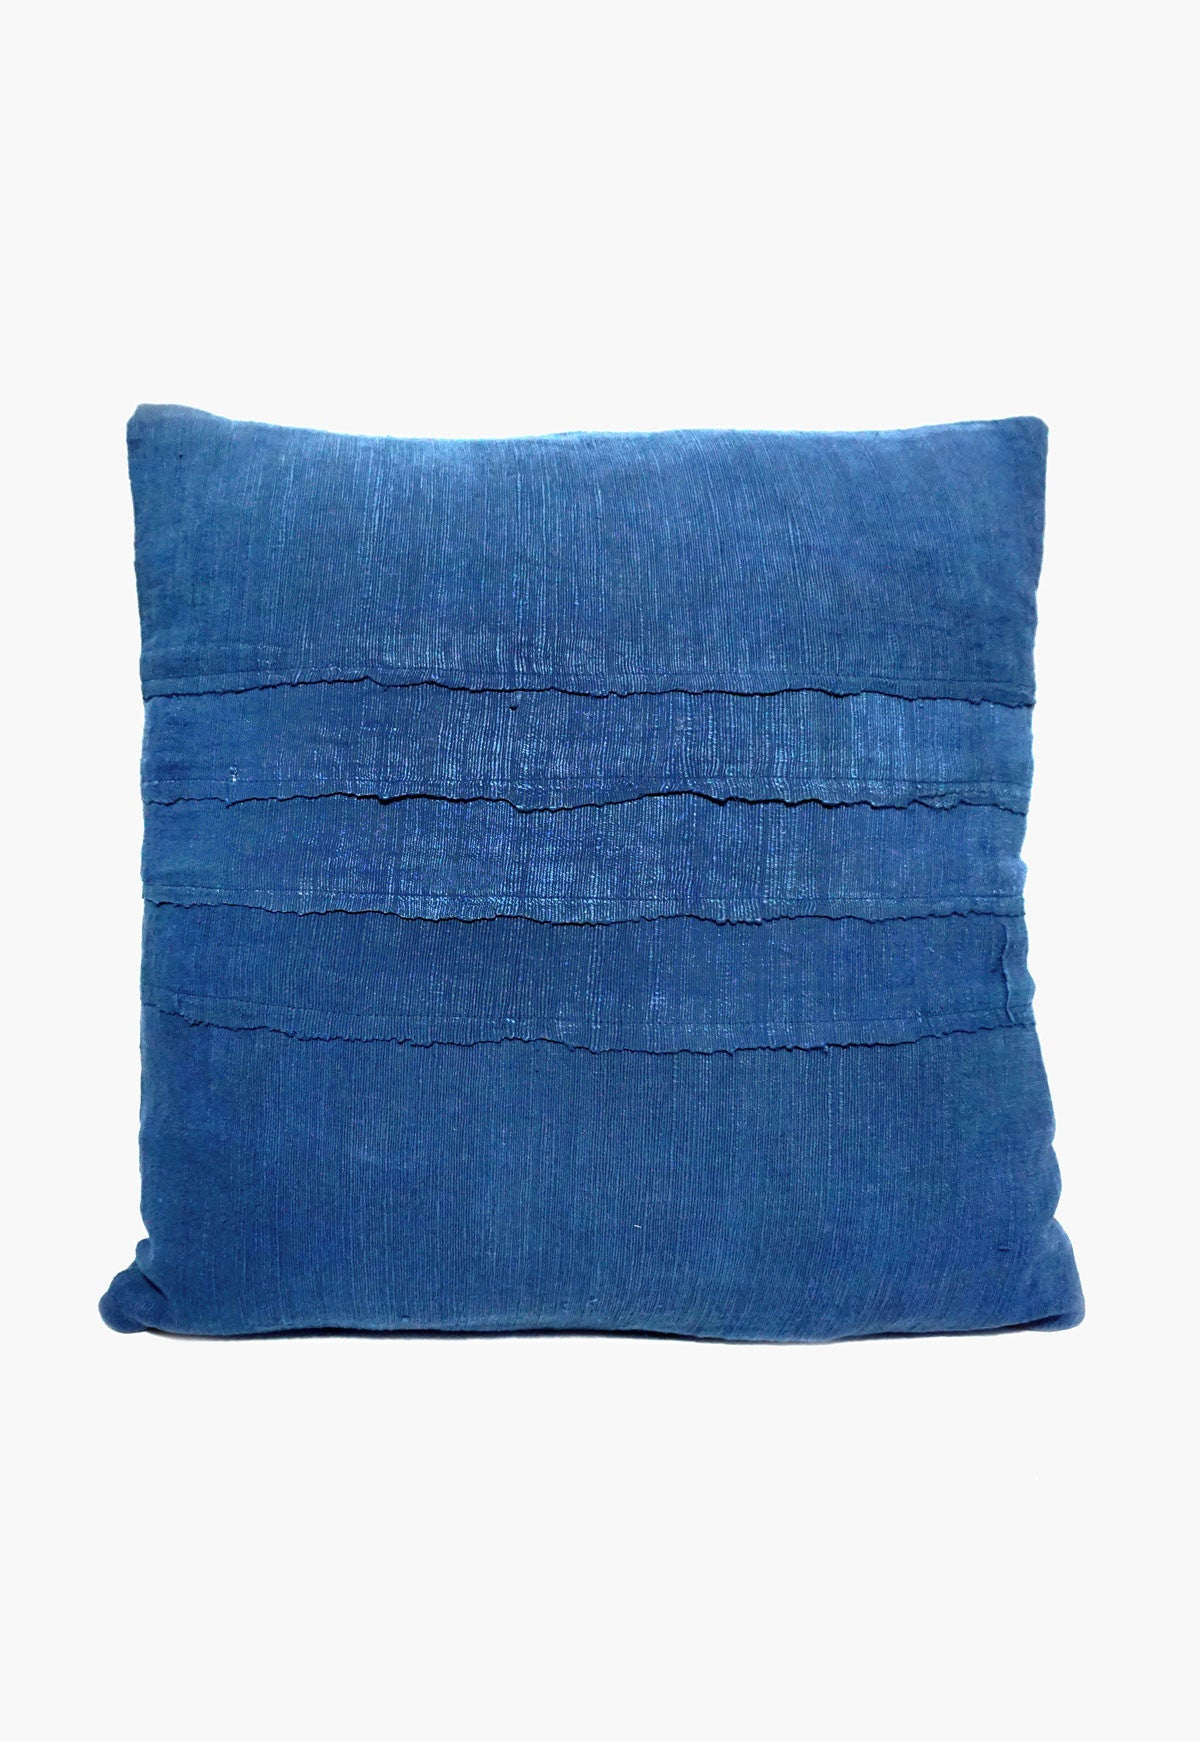 Indigo Khadi Pillow Cover